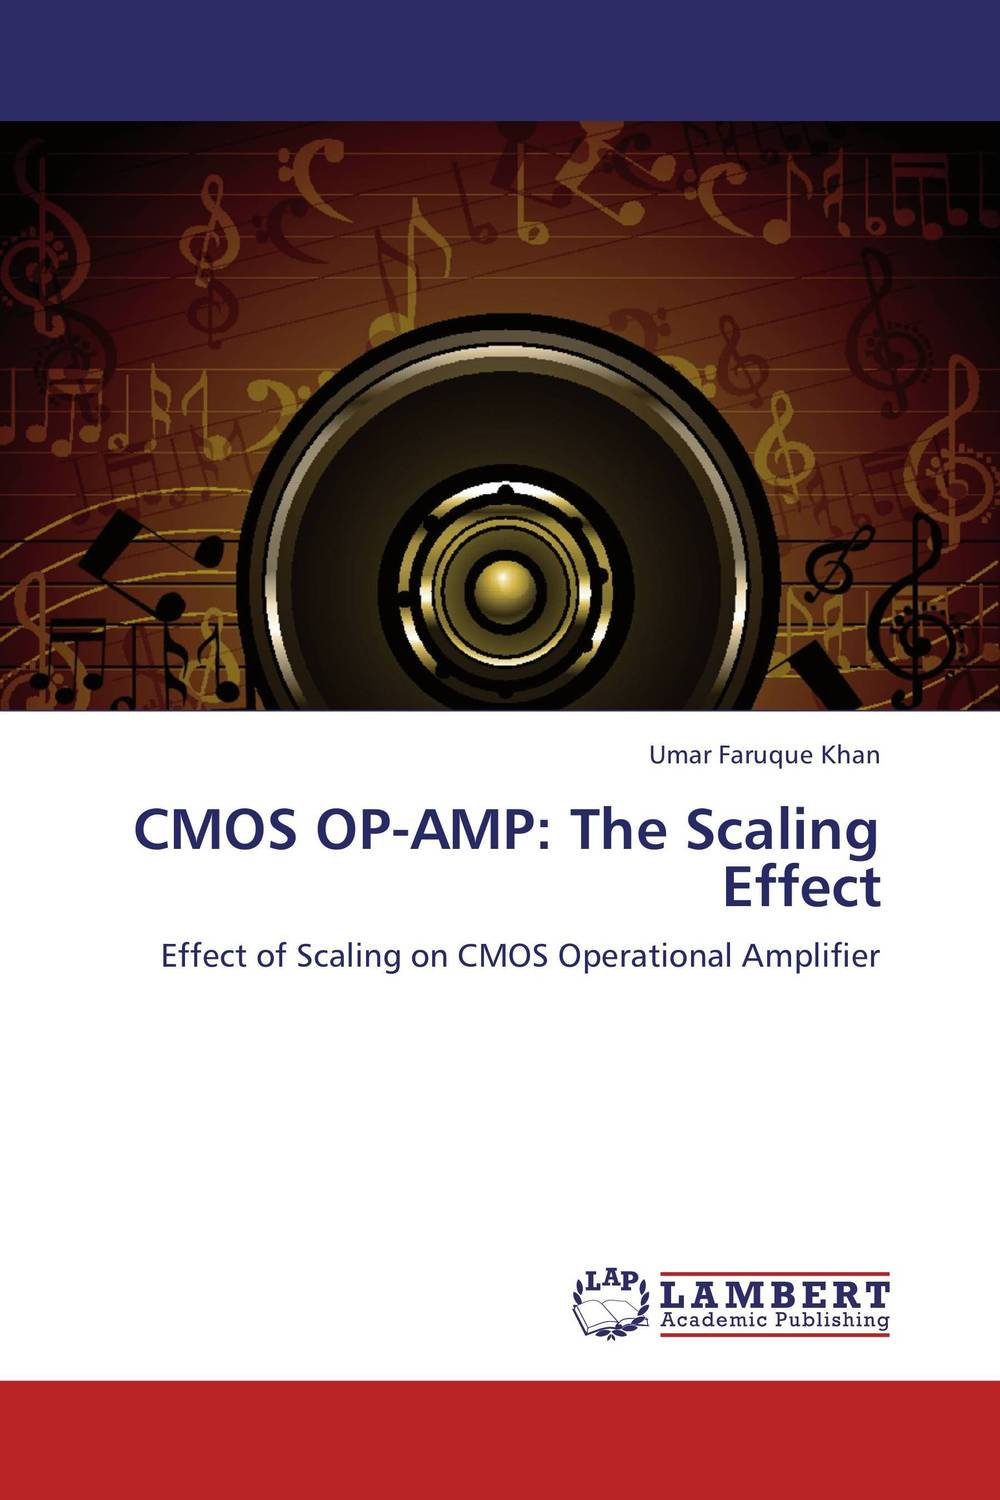 CMOS OP-AMP: The Scaling Effect elena fishtik sara laws are keeping silence during the war